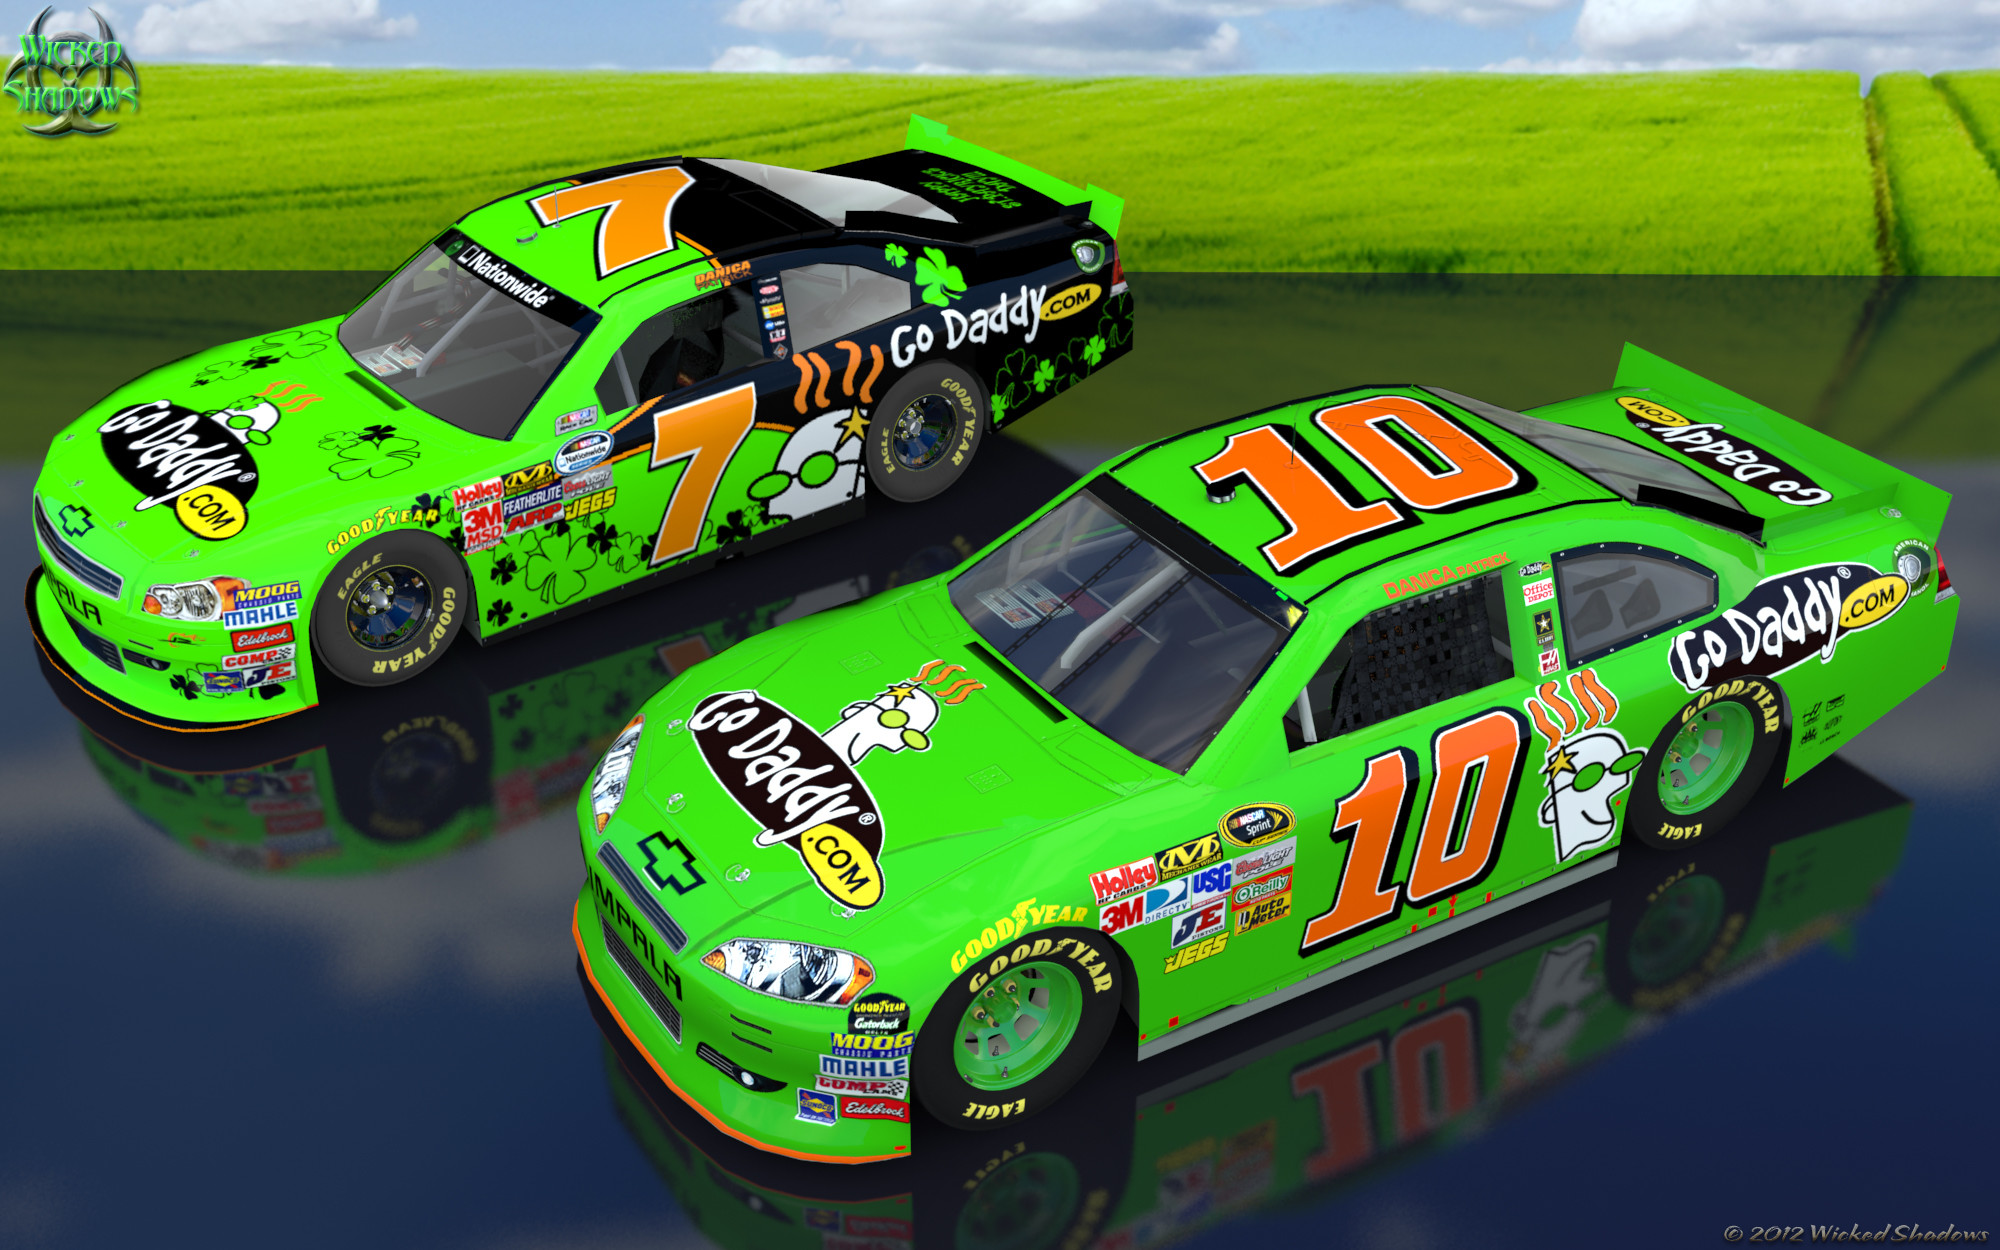 Wallpapers By Wicked Shadows: Danica Patrick 2012 double .